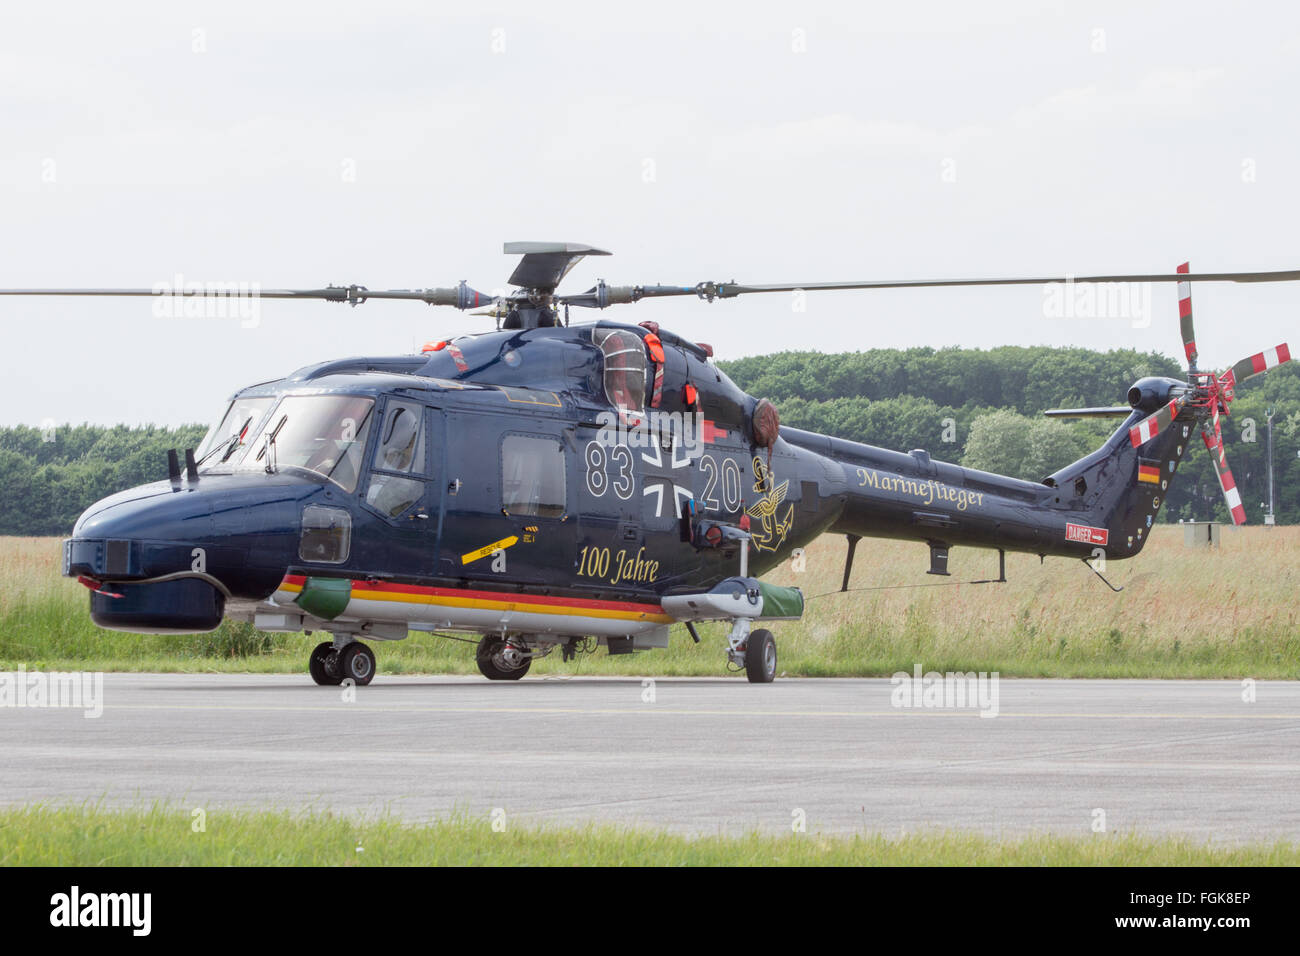 German Navy Sea Lynx helicopter on display at the Dutch Air Force Open Days. - Stock Image